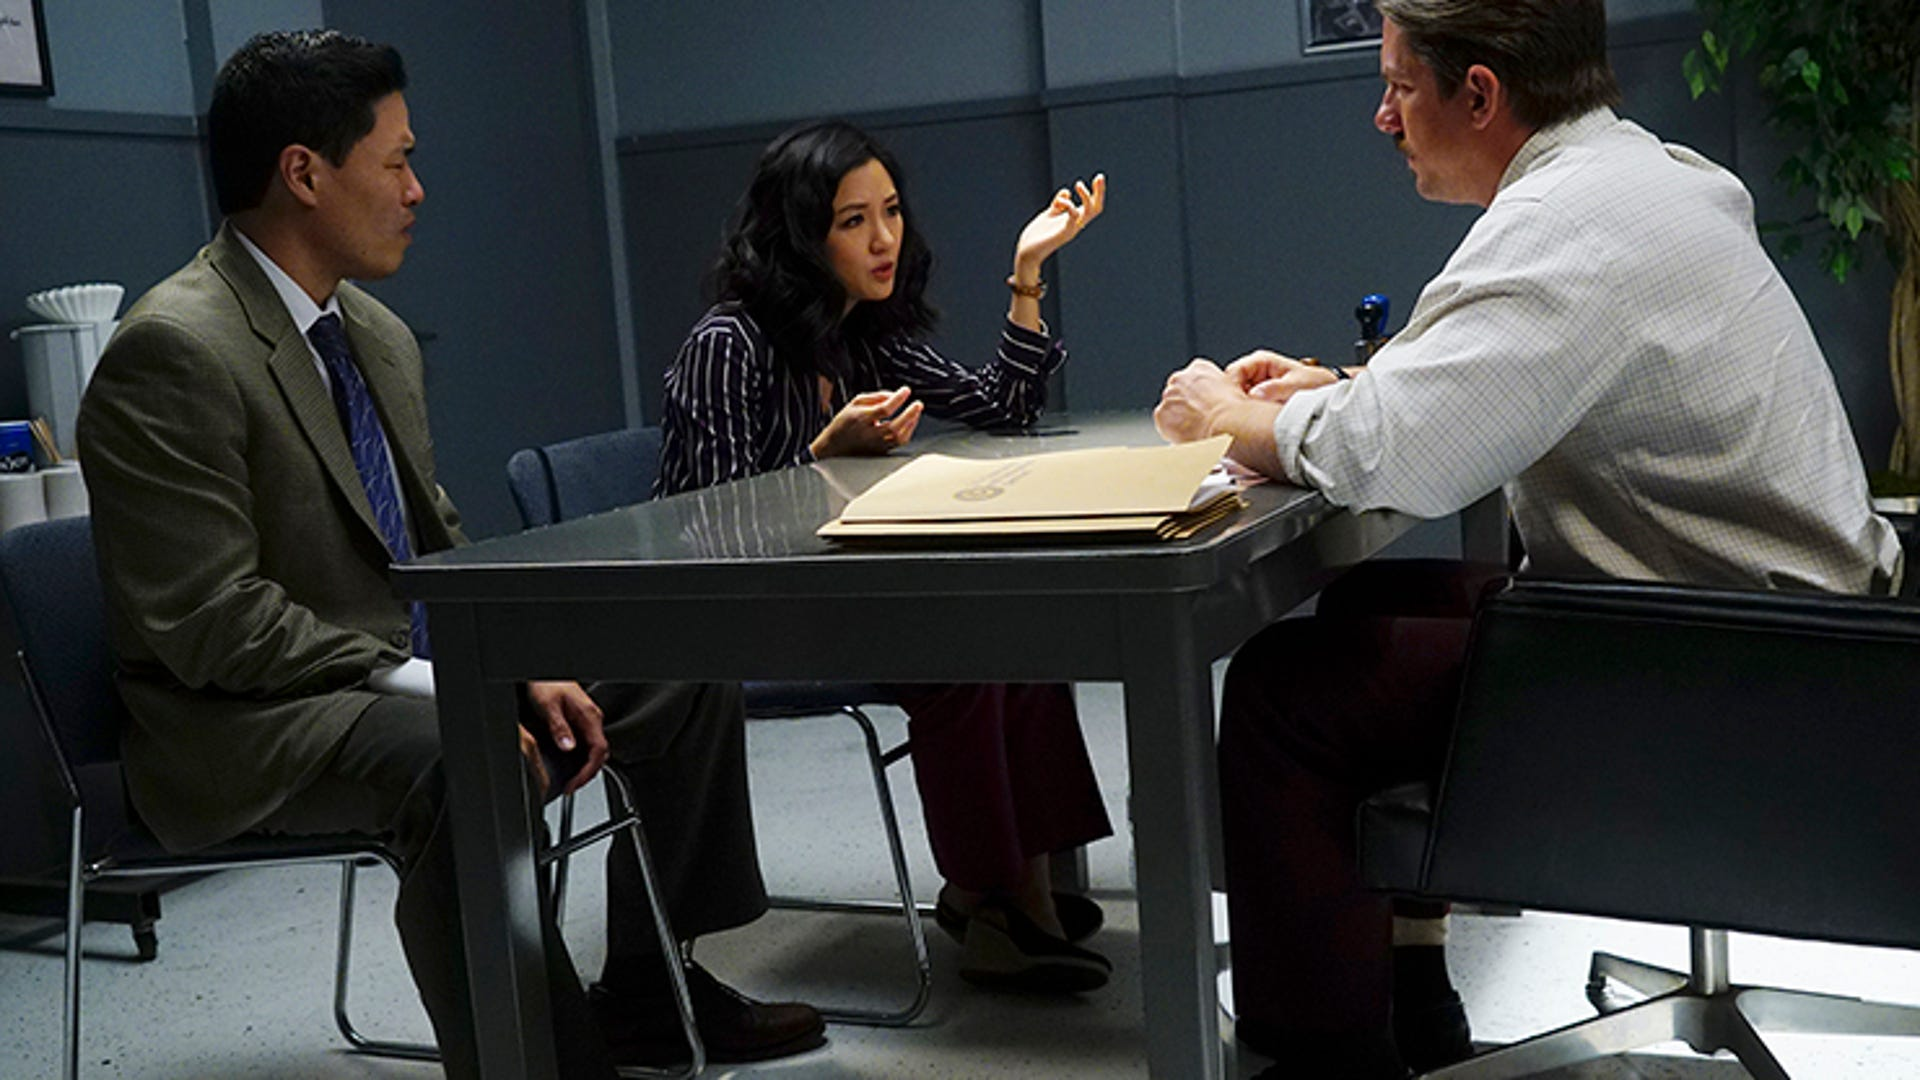 Randall Park, Constance Wu and Zachary Knighton, Fresh Off the Boat